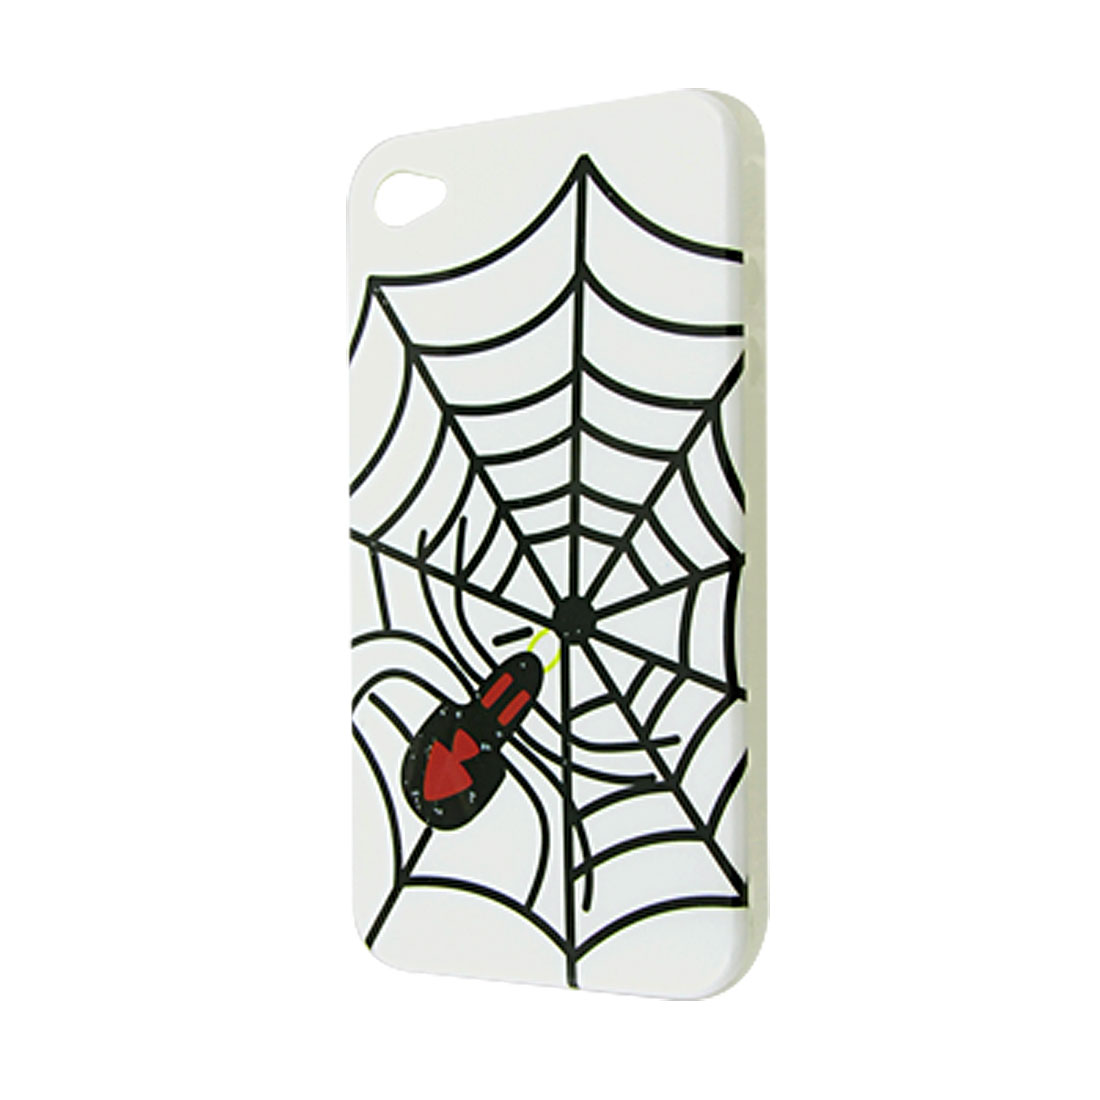 Spider Web Pattern IMD Plastic Back Cover for iPhone 4 4G